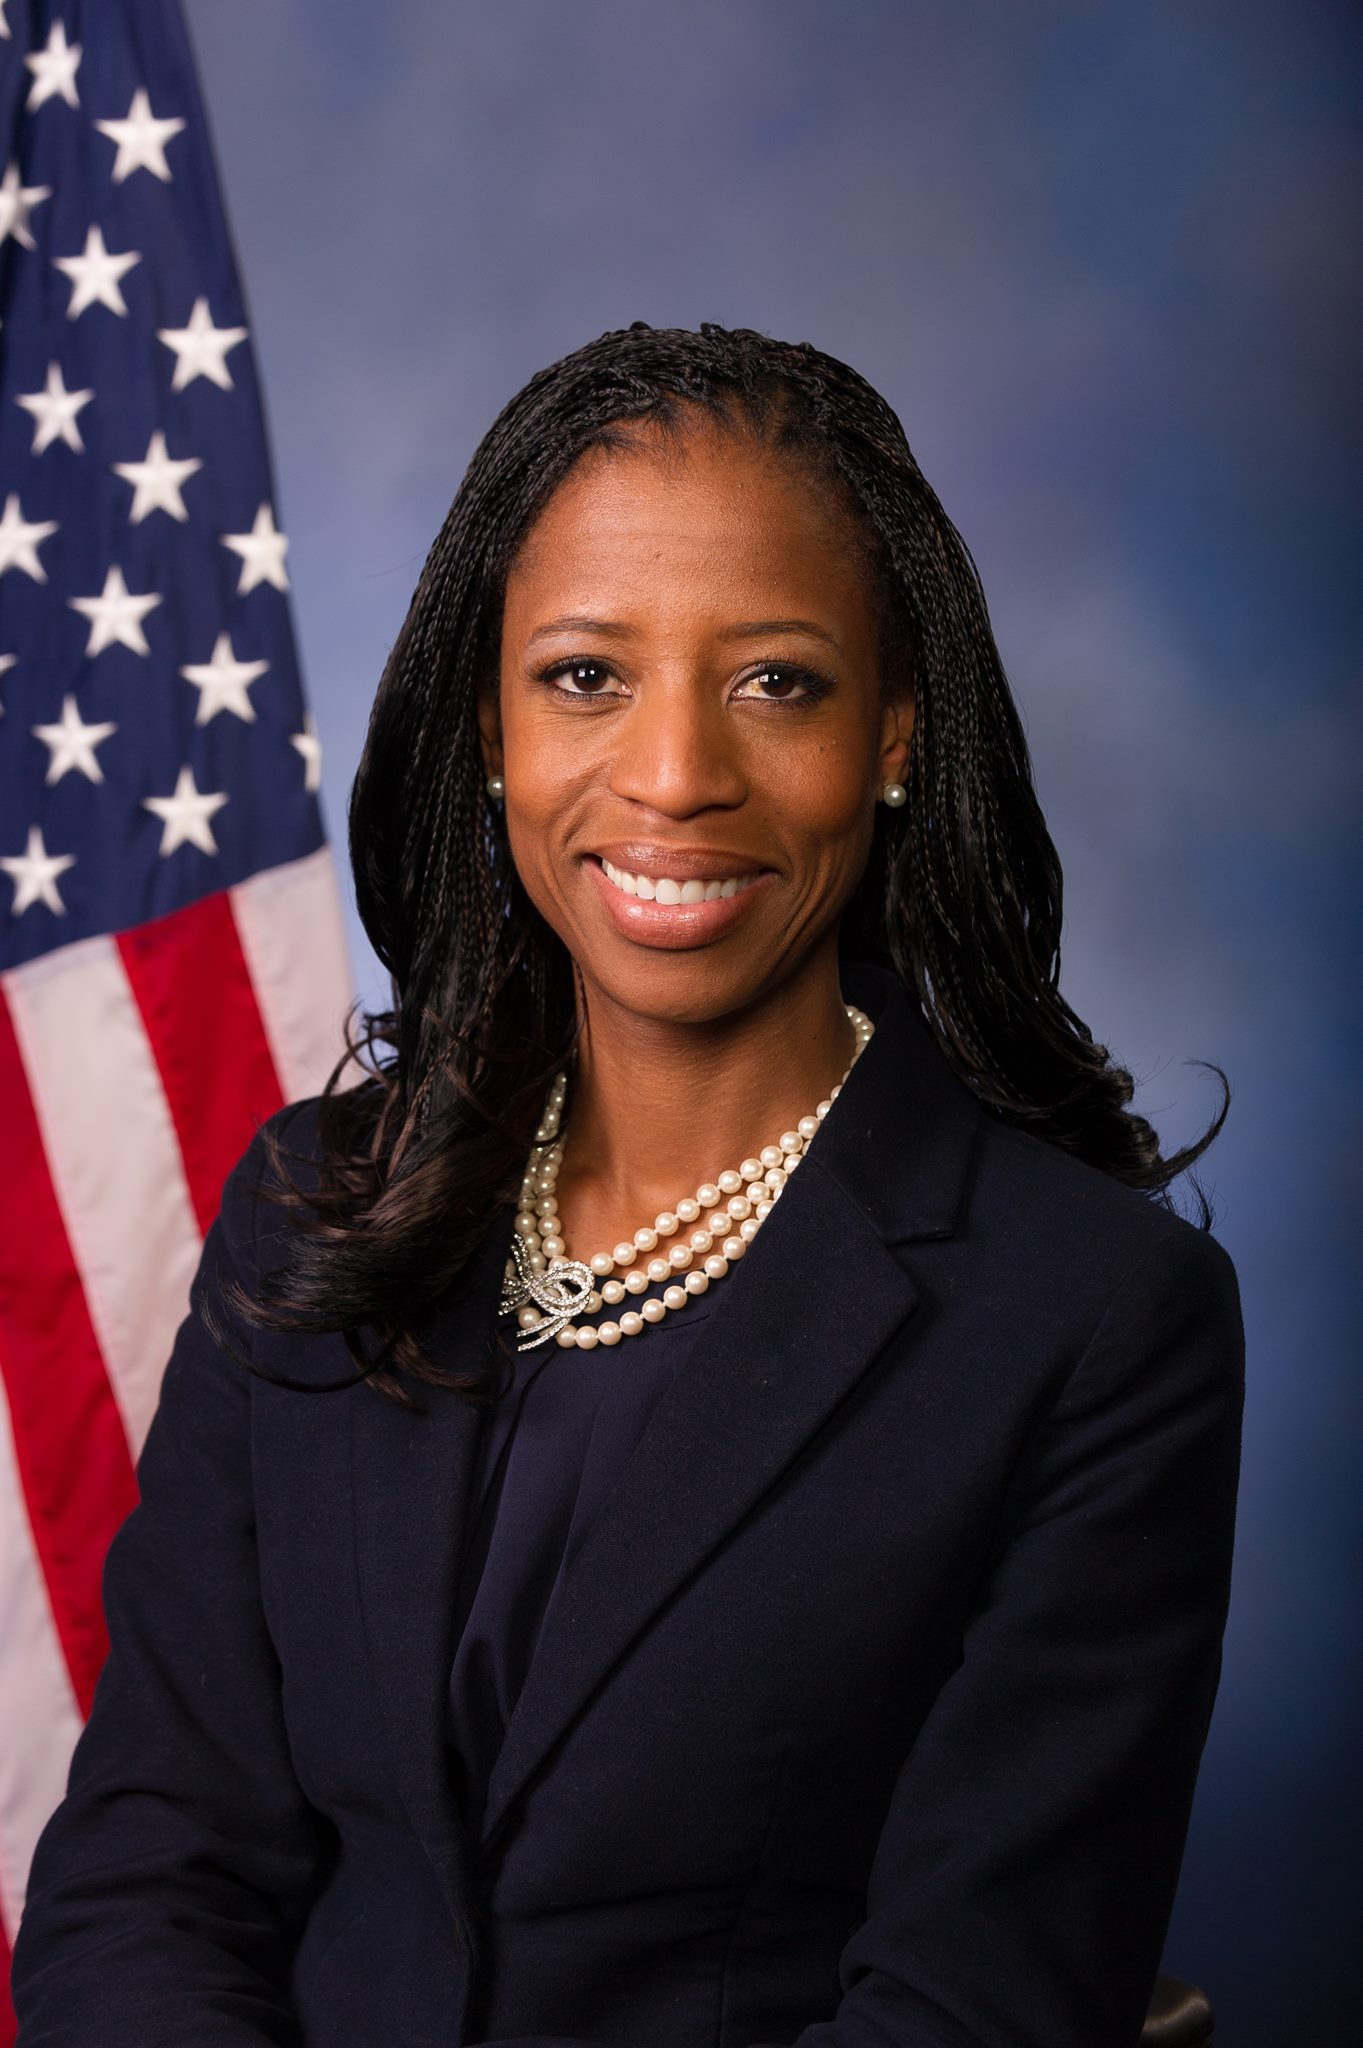 Photo of Mia Love